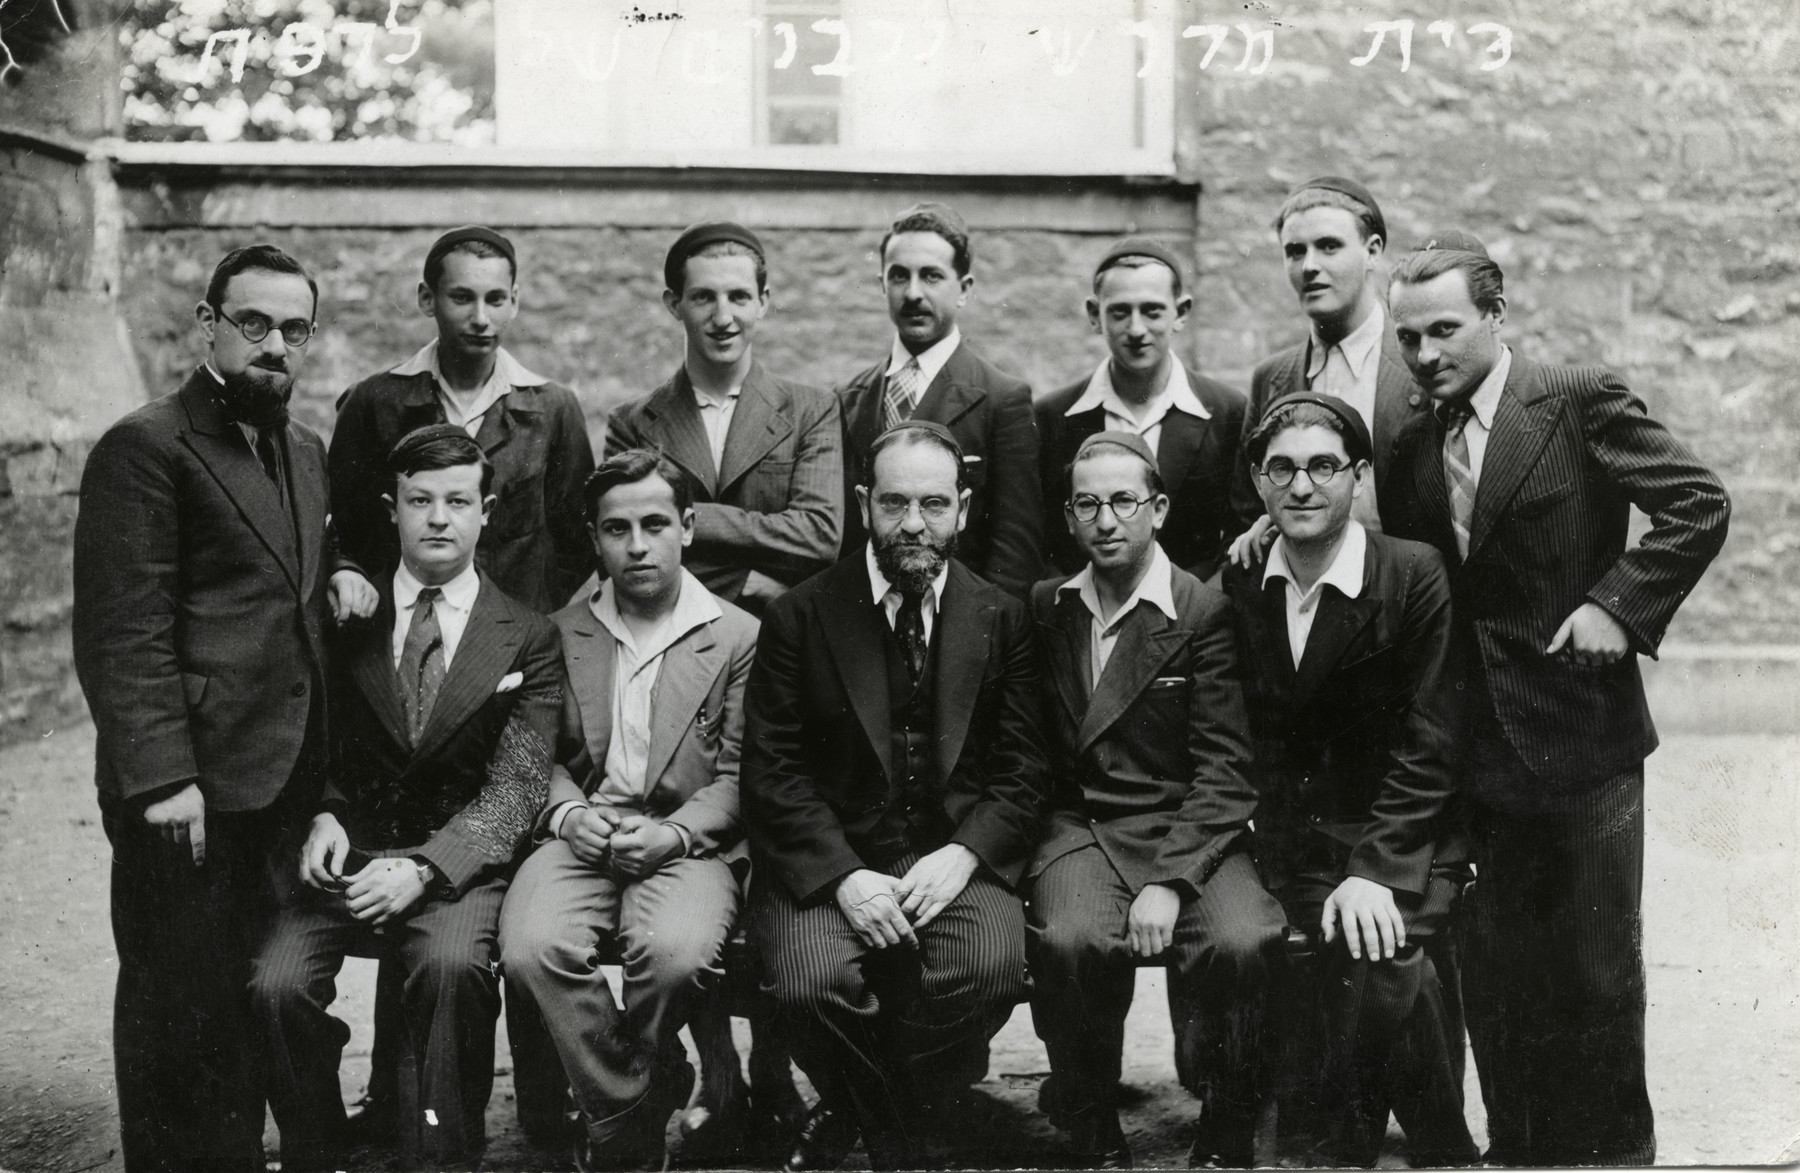 Jewish rabbinical students pose in front of a building.   Moise Cassorla, father of the donor, is sitting on the bench, second person from the right. Rabbi Joseph M Brandriss is pictured seated on the left.    Rabbi Brandriss received his ordination from the Consistoire in 1939 and served as a Jewish Chaplain in the 107th Infantry of the French Army.  He spent the war years in a prisoner-of-war camp in Germany. After the war he was appointed Rabbi in St. Amiens and Grand-Rabbin du la Nord de la France at Lille prior to immigrating to the United States.